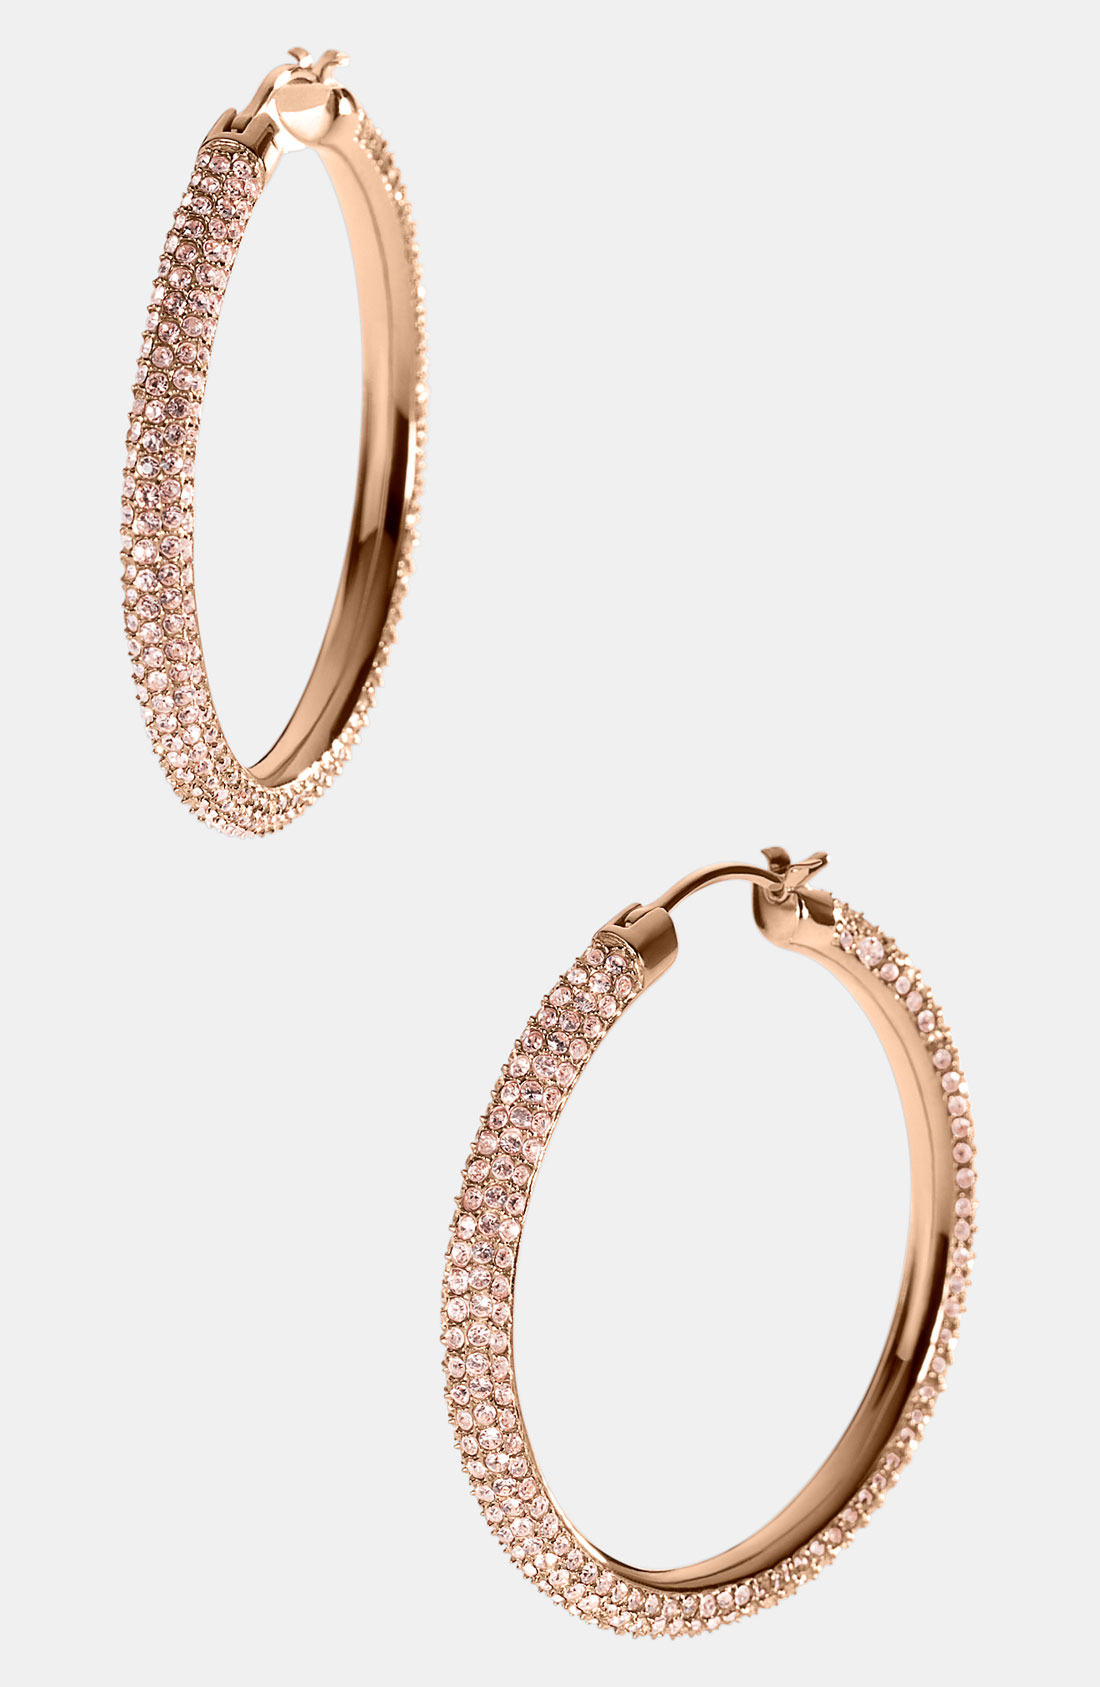 michael kors gold hoop earrings michael michael kors camille pav 233 hoop earrings in gold 2642